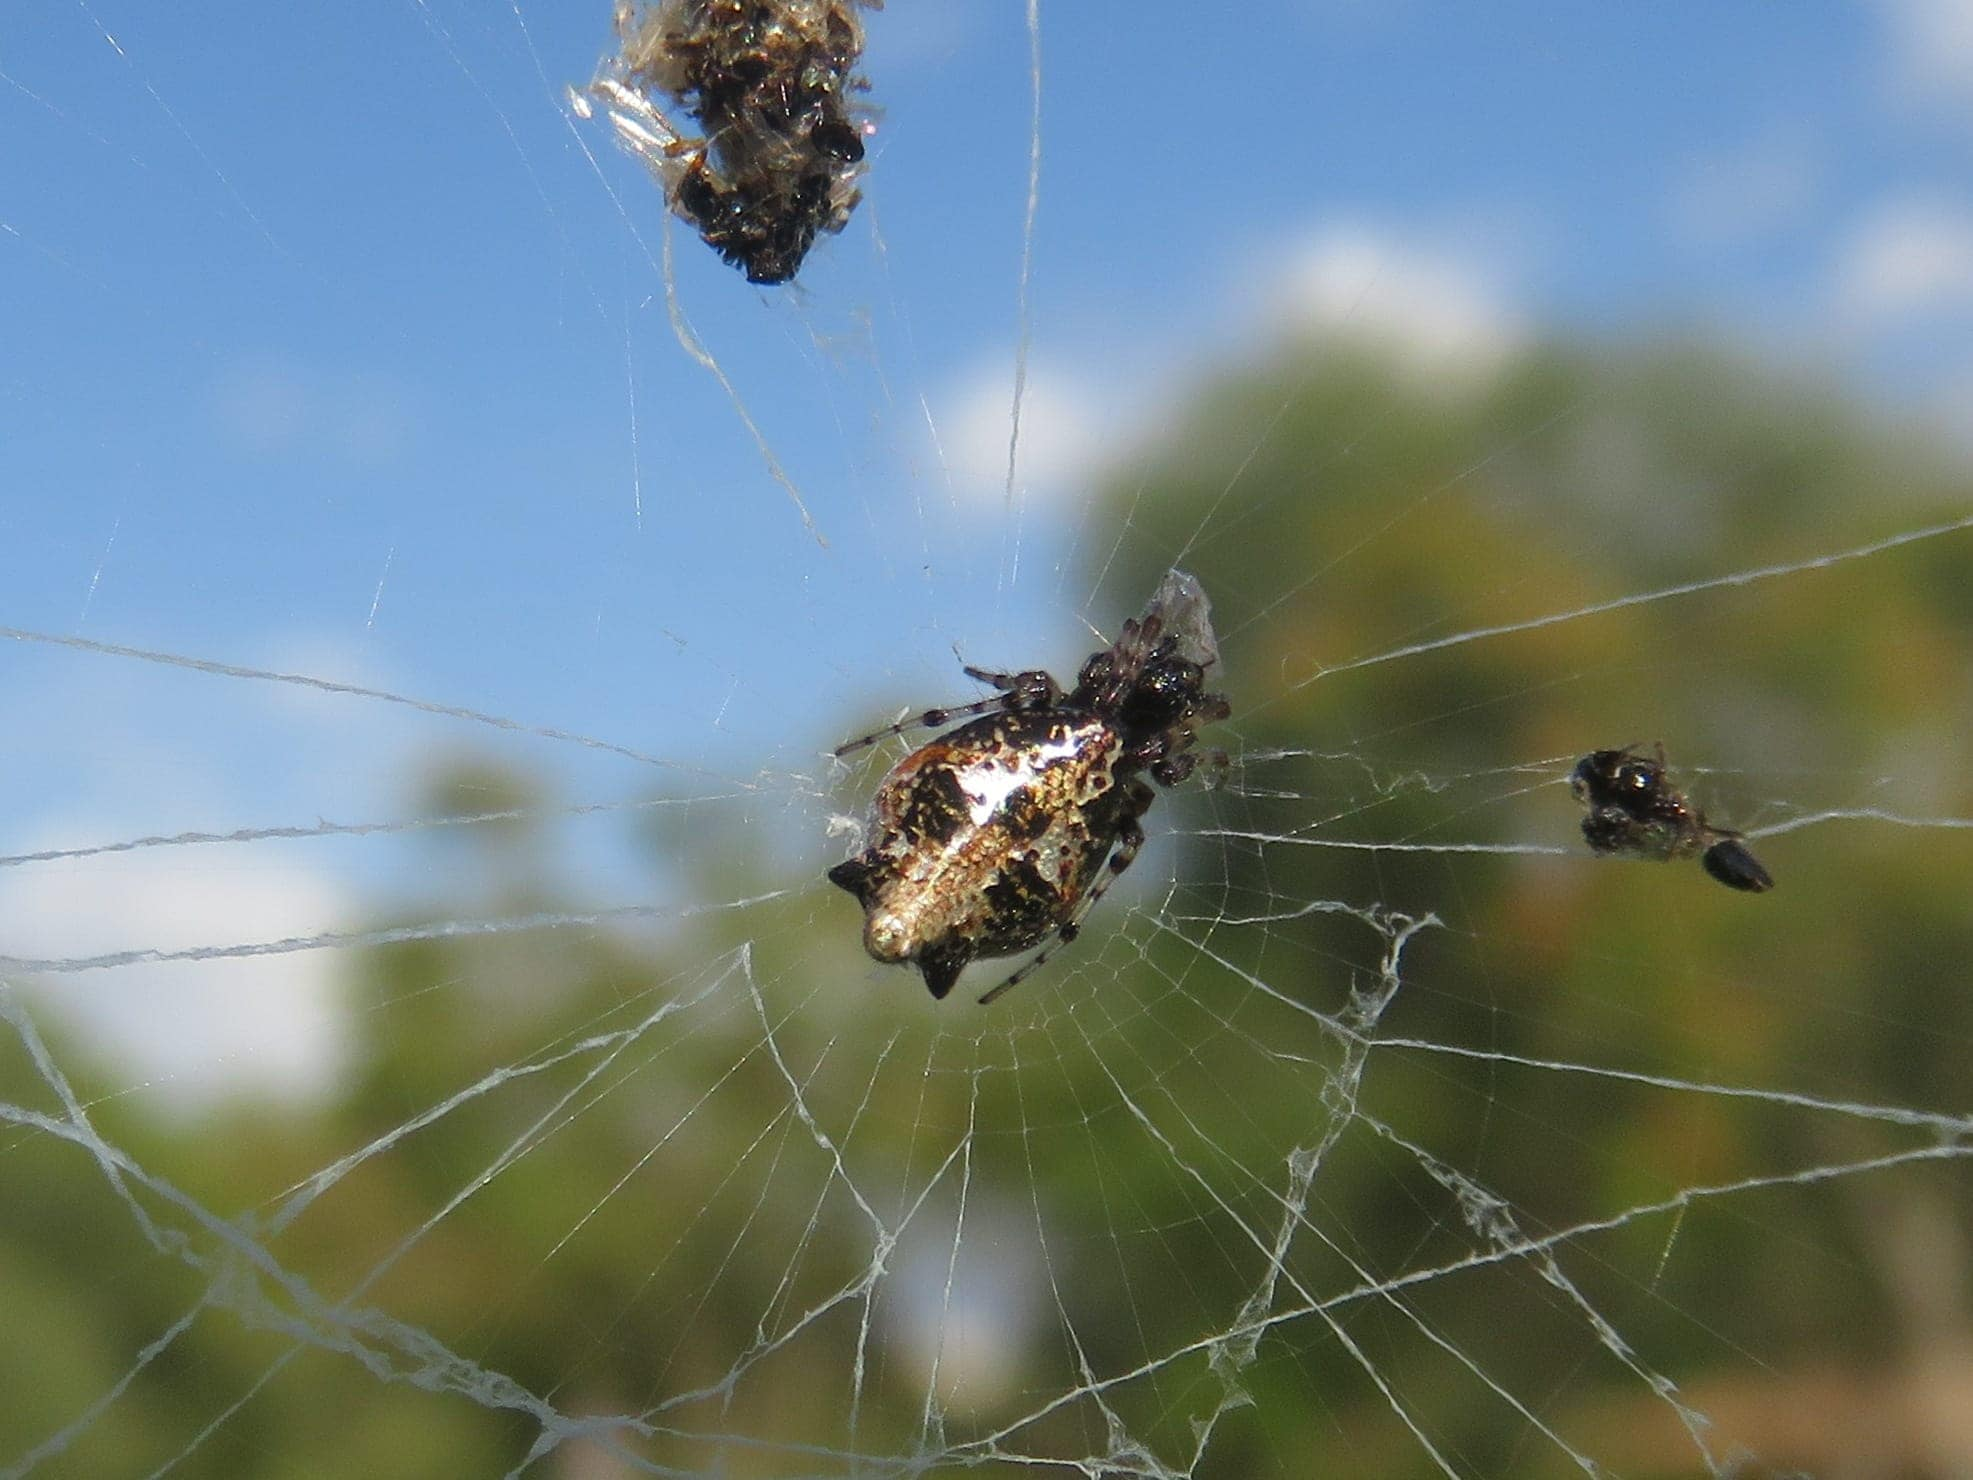 Picture of Cyclosa insulana (Island Cyclosa Spider) - Dorsal,Webs,Prey